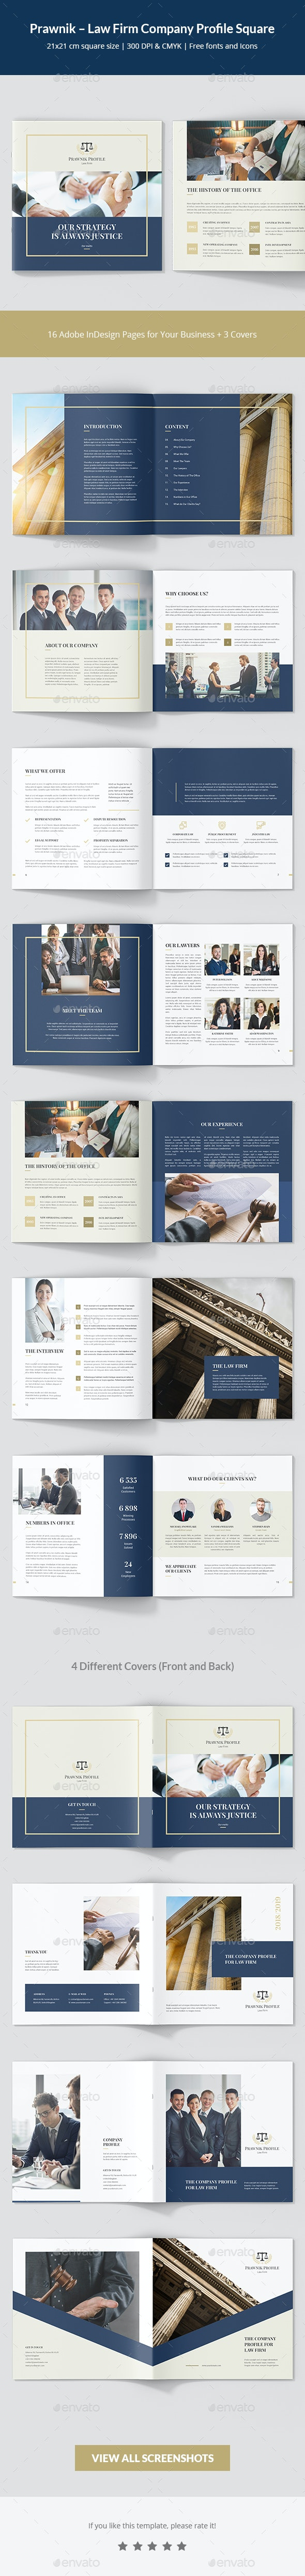 Prawnik – Law Firm Company Profile Square - Corporate Brochures